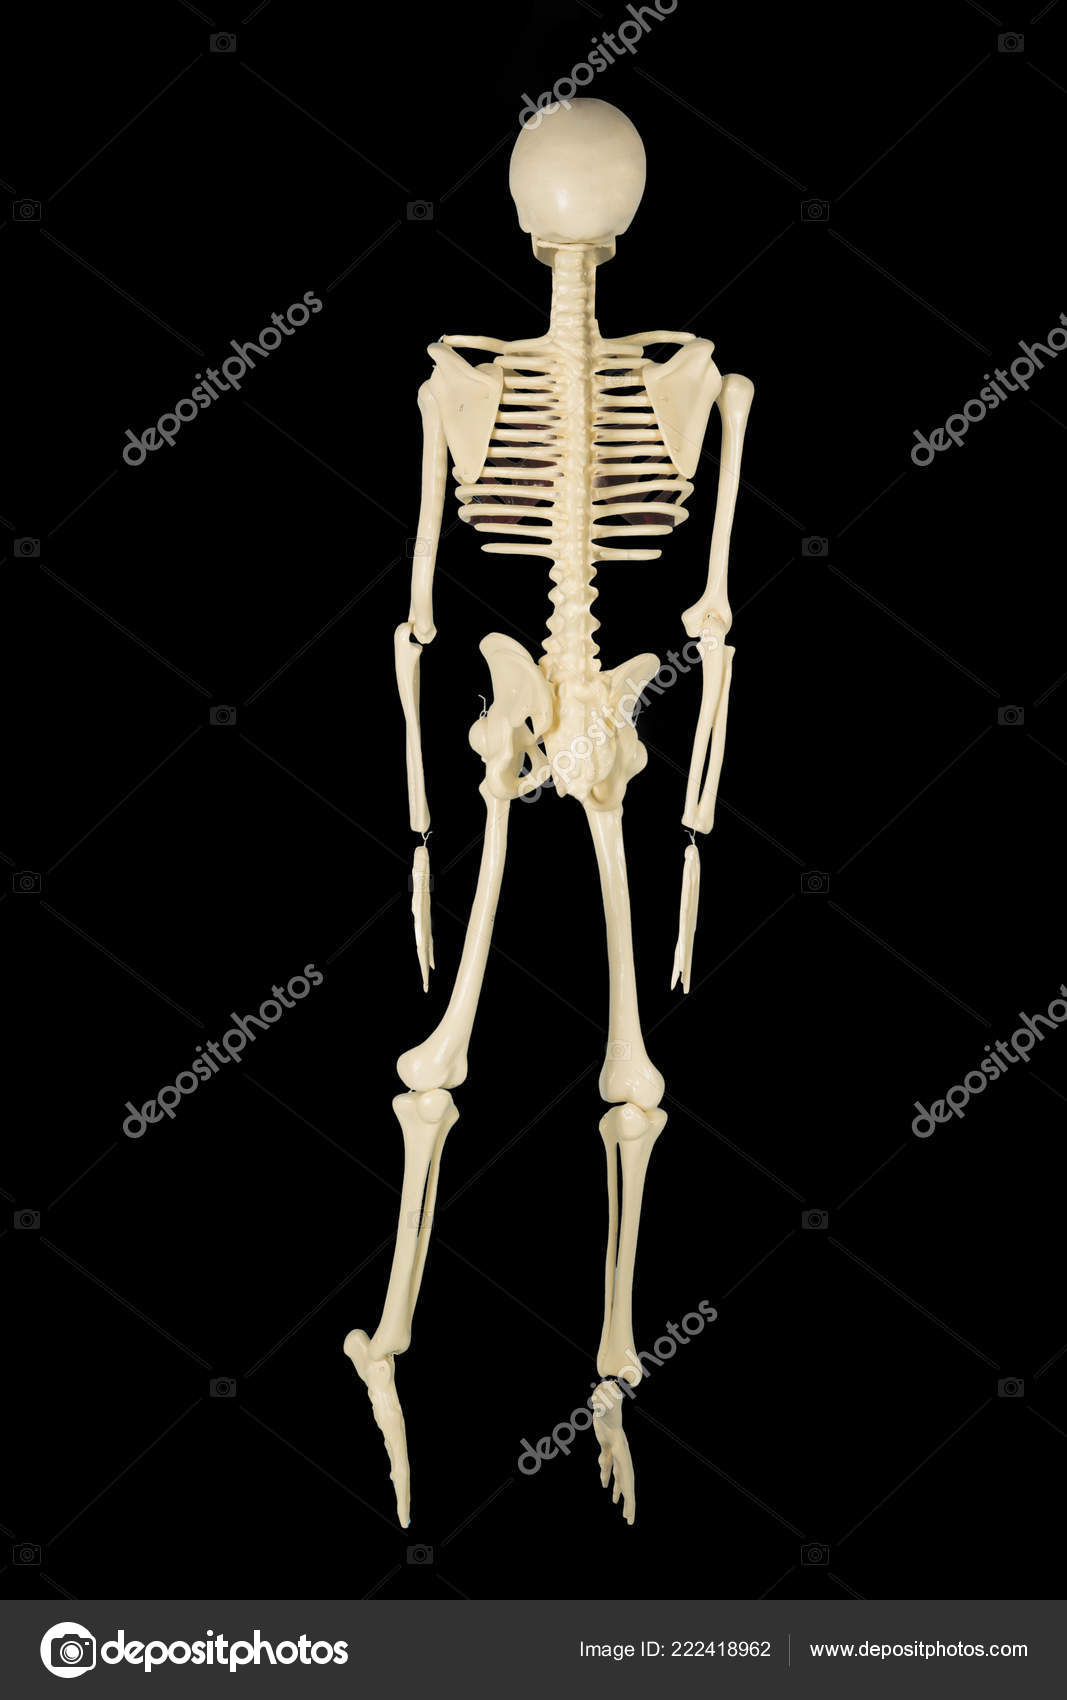 hight resolution of back view human bone structure studio dark background stock photo